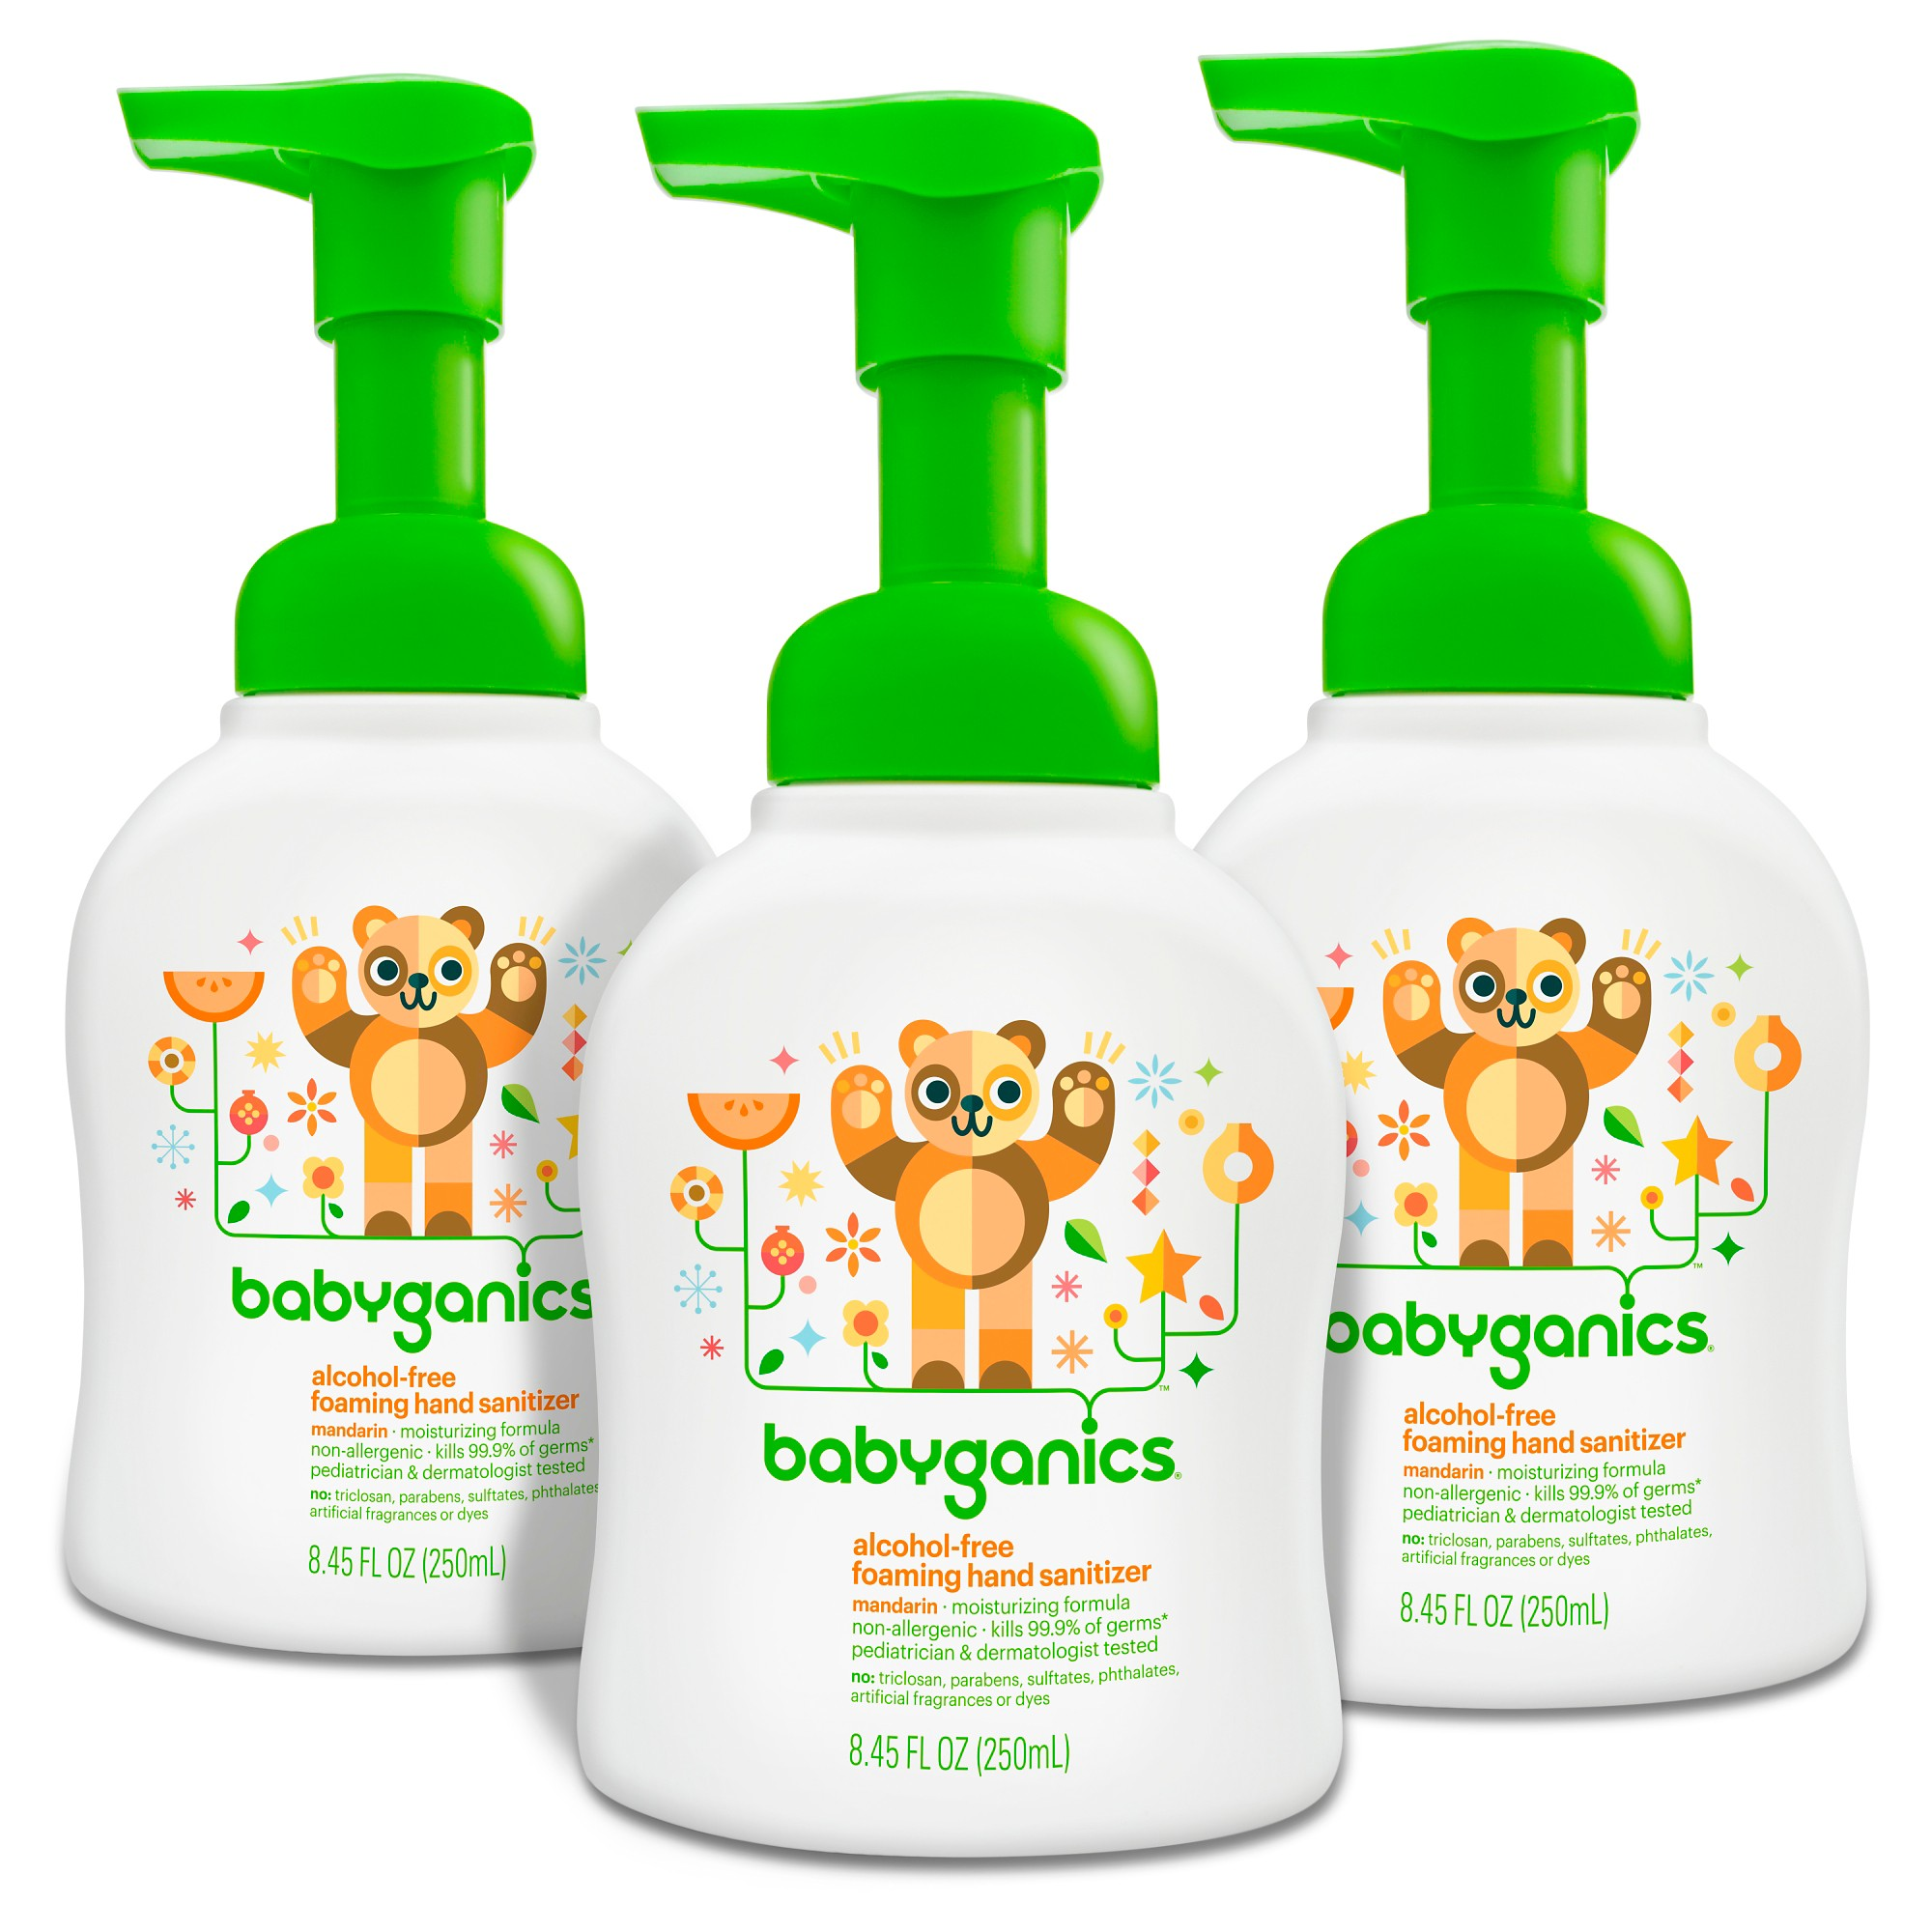 Babyganics Alcohol Free Foaming Hand Sanitizer Bundle 2 Items